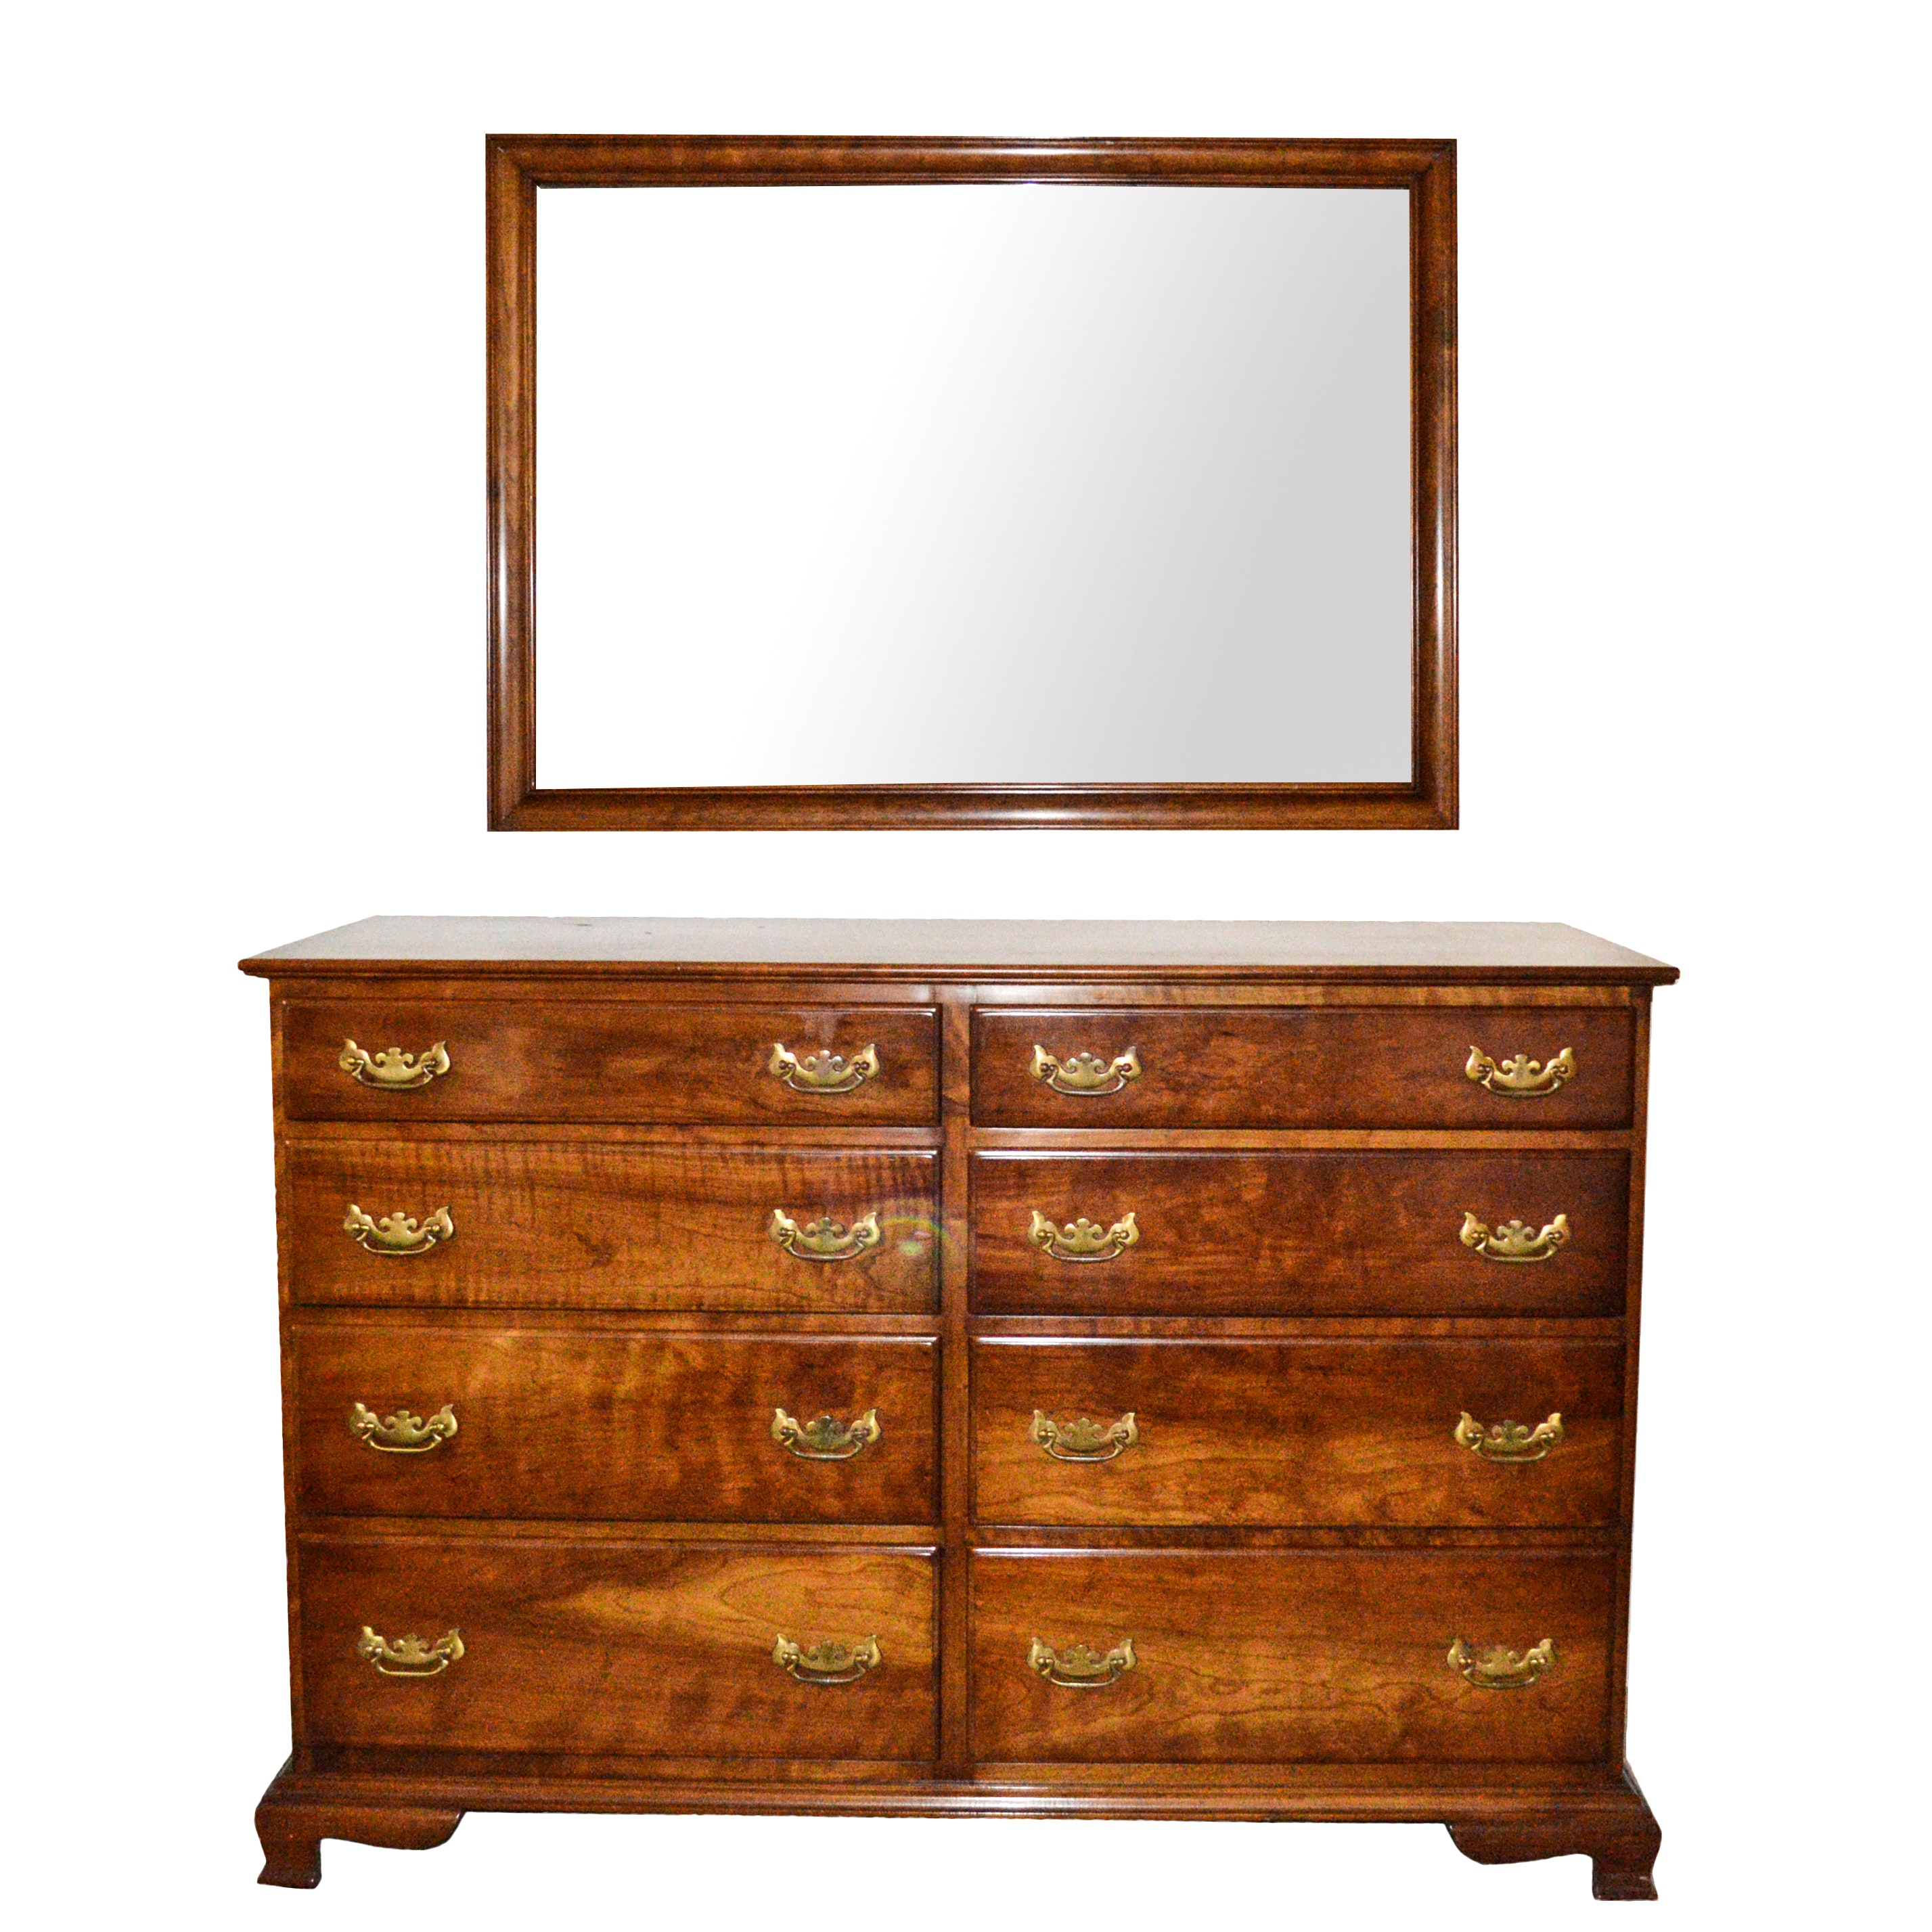 Stickley Cherry Wood Chest of Drawers and Mirror